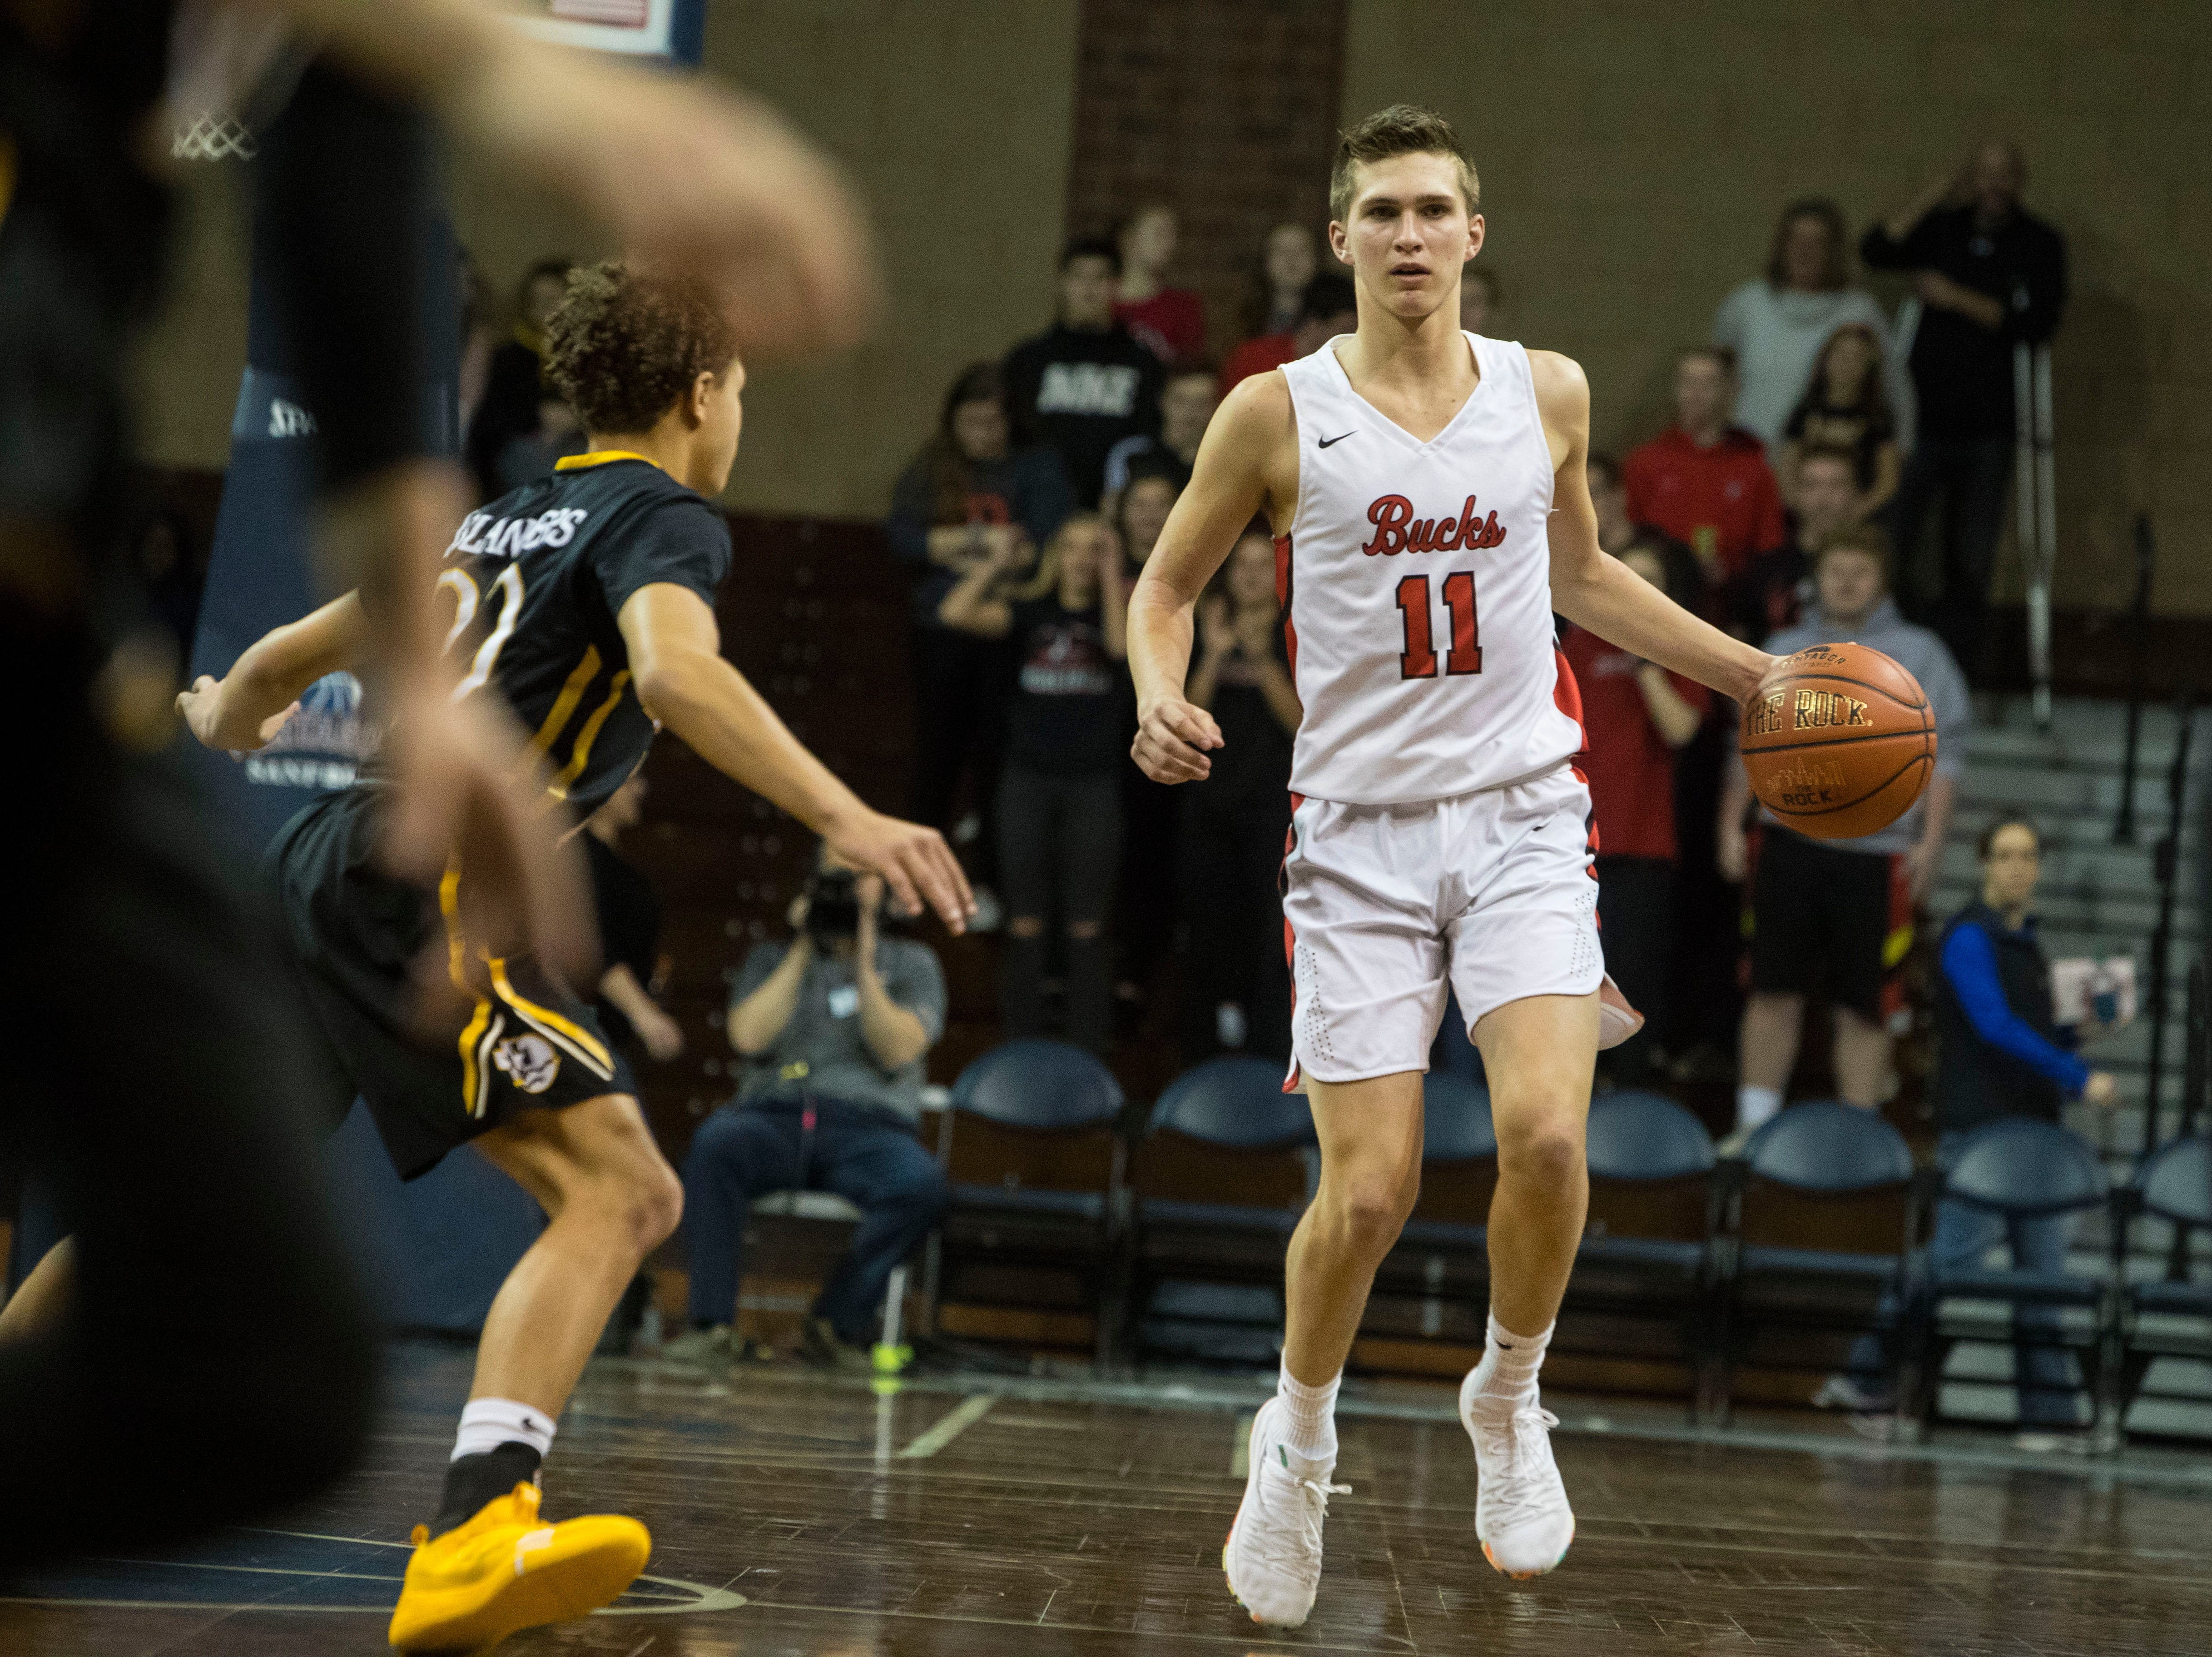 Yankton's Cooper Cornemann (11) dribbles the ball during a game against DeLaSalle at the Hoop City Classic at the Sanford Pentagon in Sioux Falls, S.D., Saturday, Dec. 29, 2018.